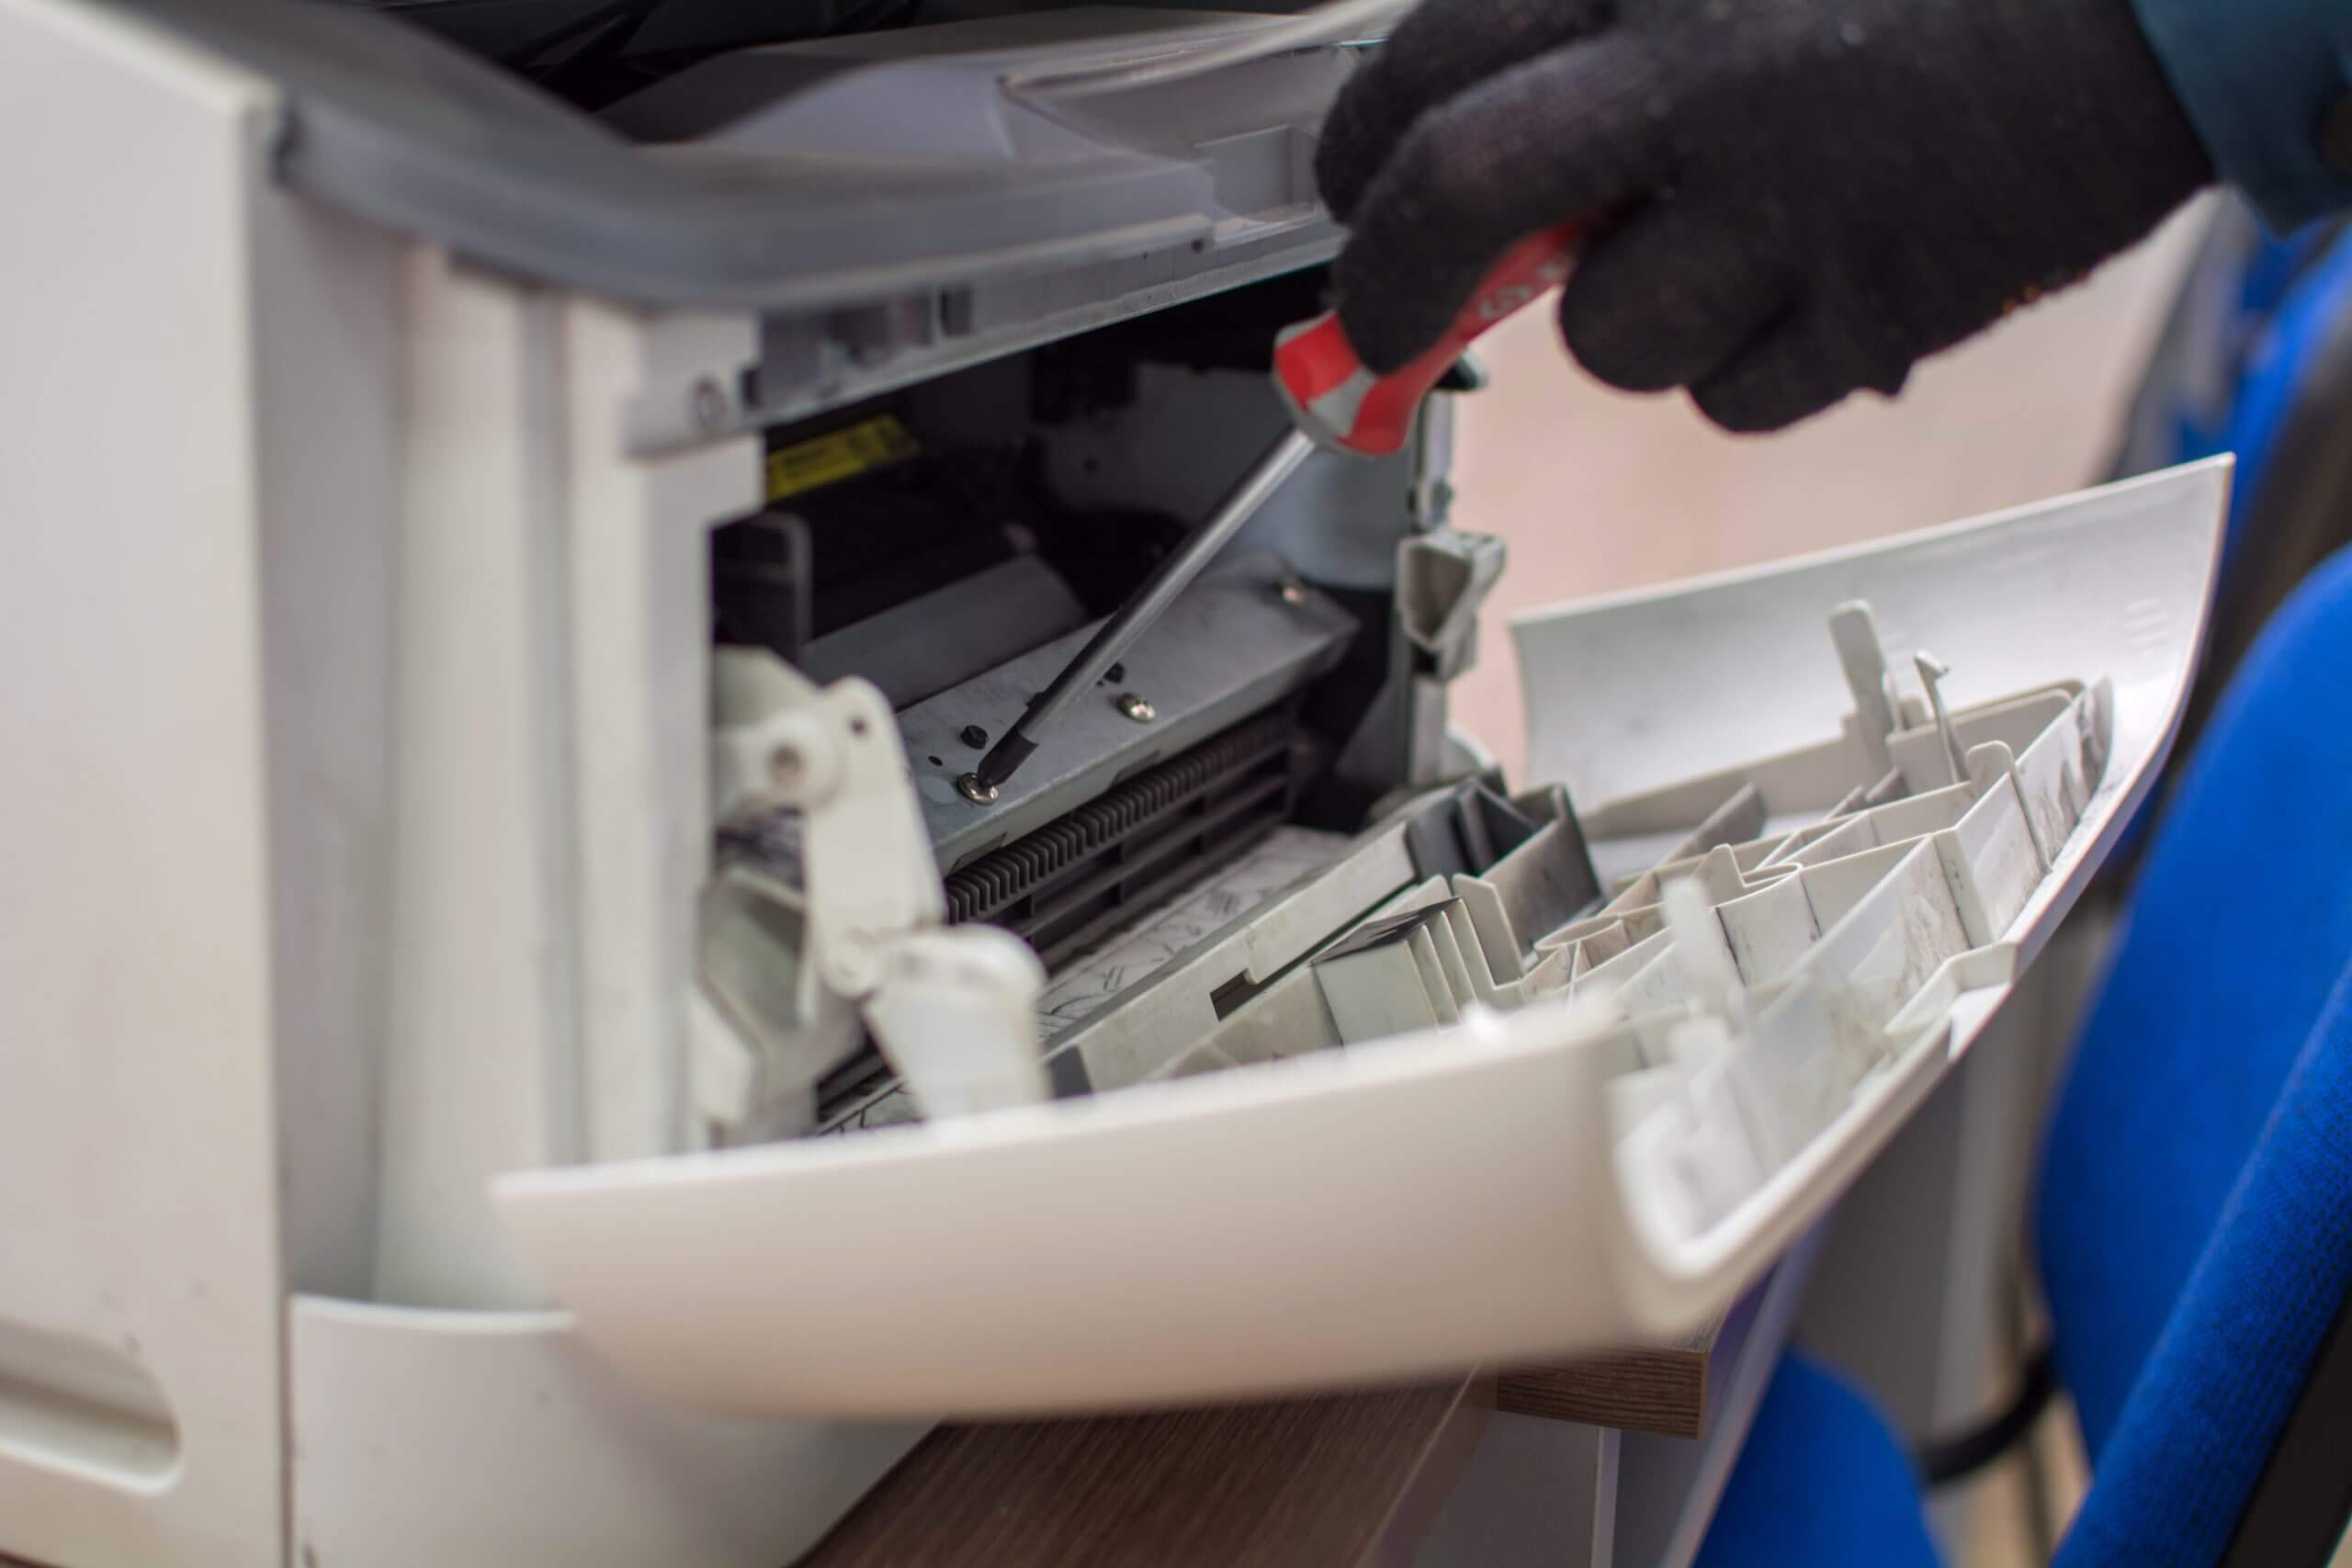 The specialist repairman serves or repairs the laser printer with a screwdriver and a brush. Servicing of copiers and printers